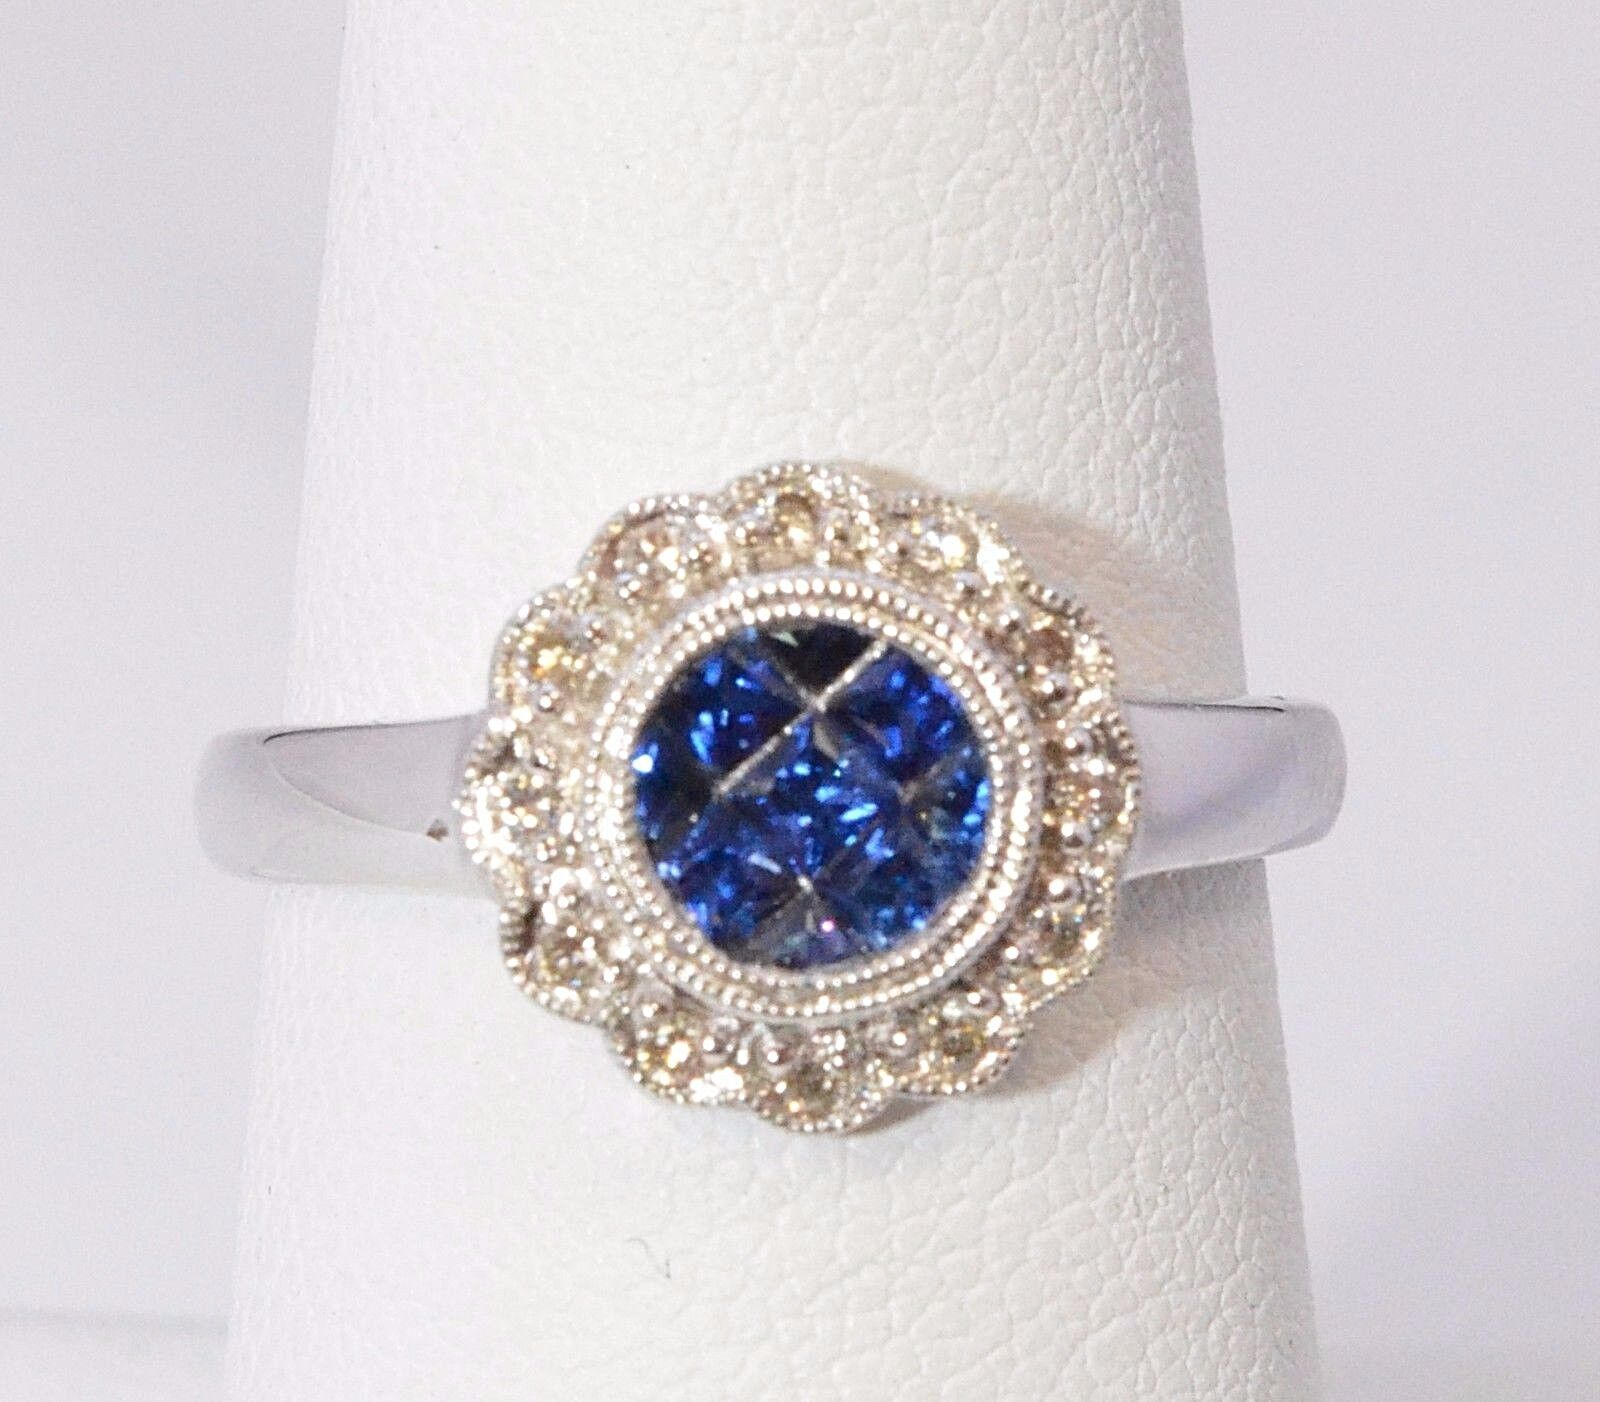 2577- 14K WHITE gold  SAPPHIRE & DIAMOND 0.82TCW 3.00 GRAMS SZ 7.75 RING